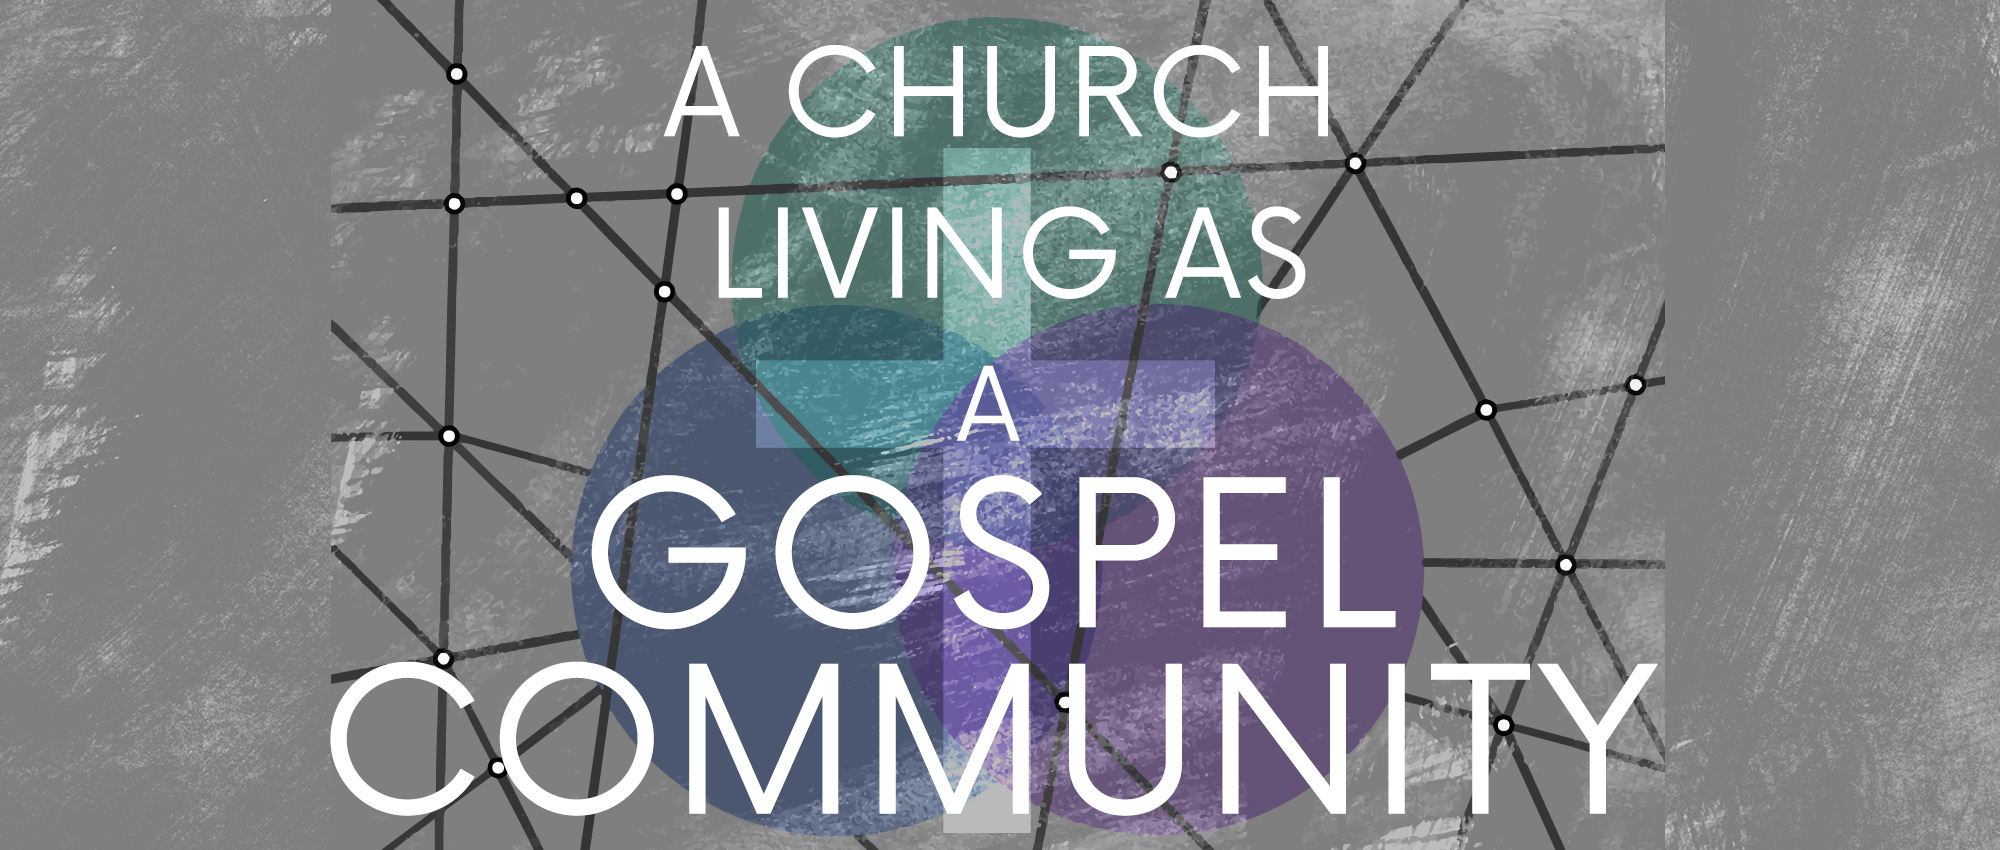 A Church Becoming a Gospel Community